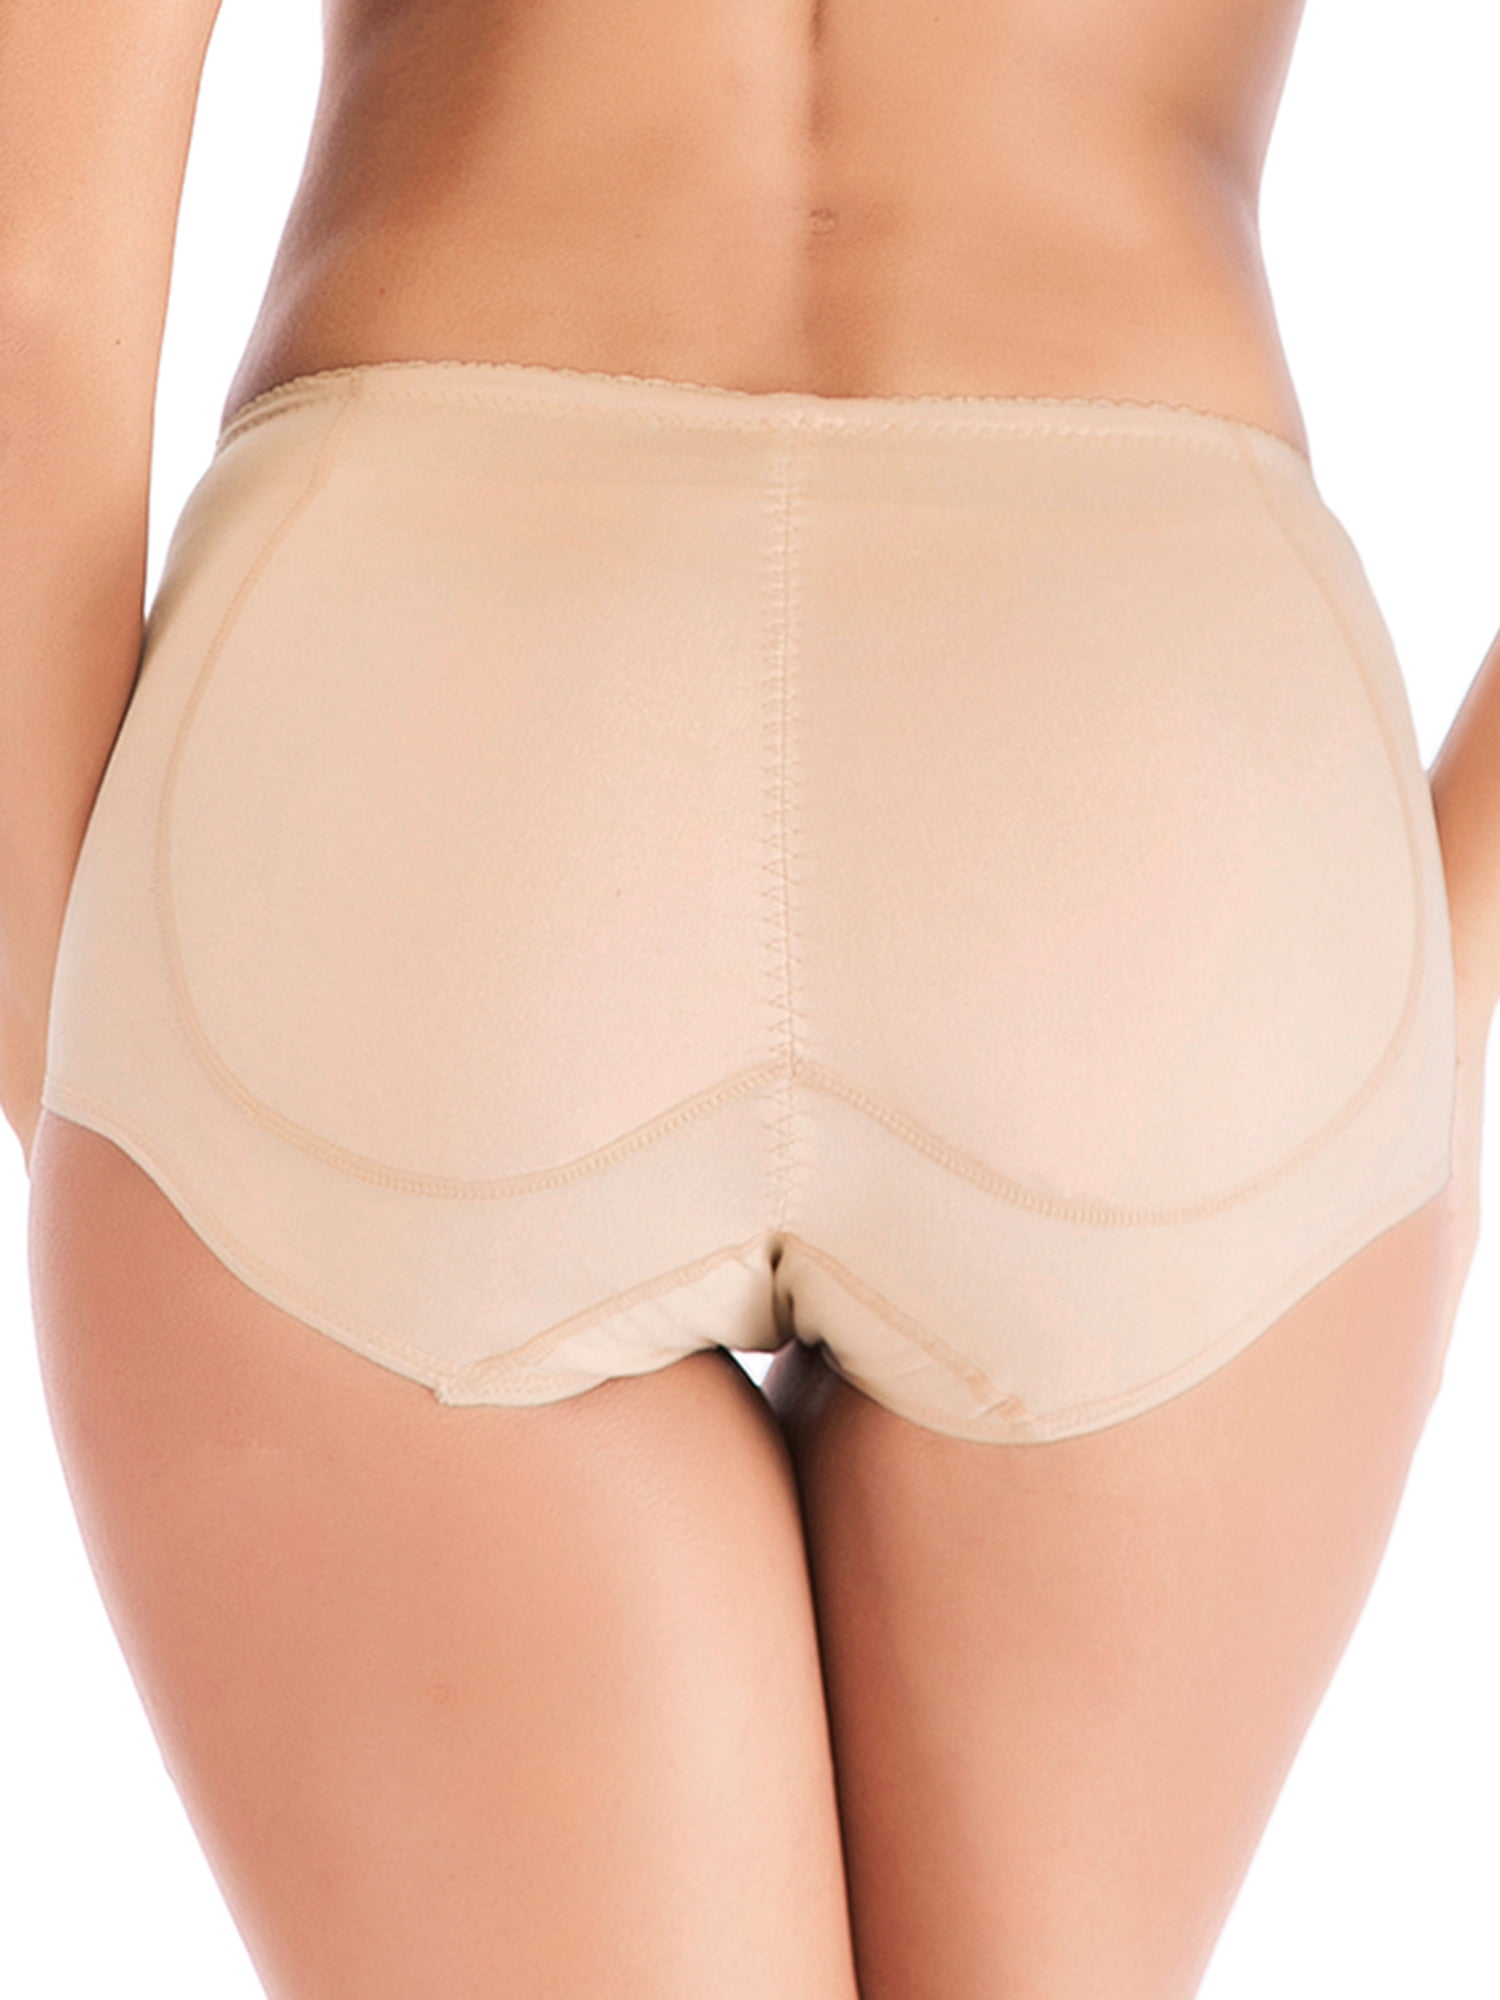 Foam Pads Padded Panties with Fake Ass Lifter Increase Butt Push Up Shape Enhancing Briefs Underwear